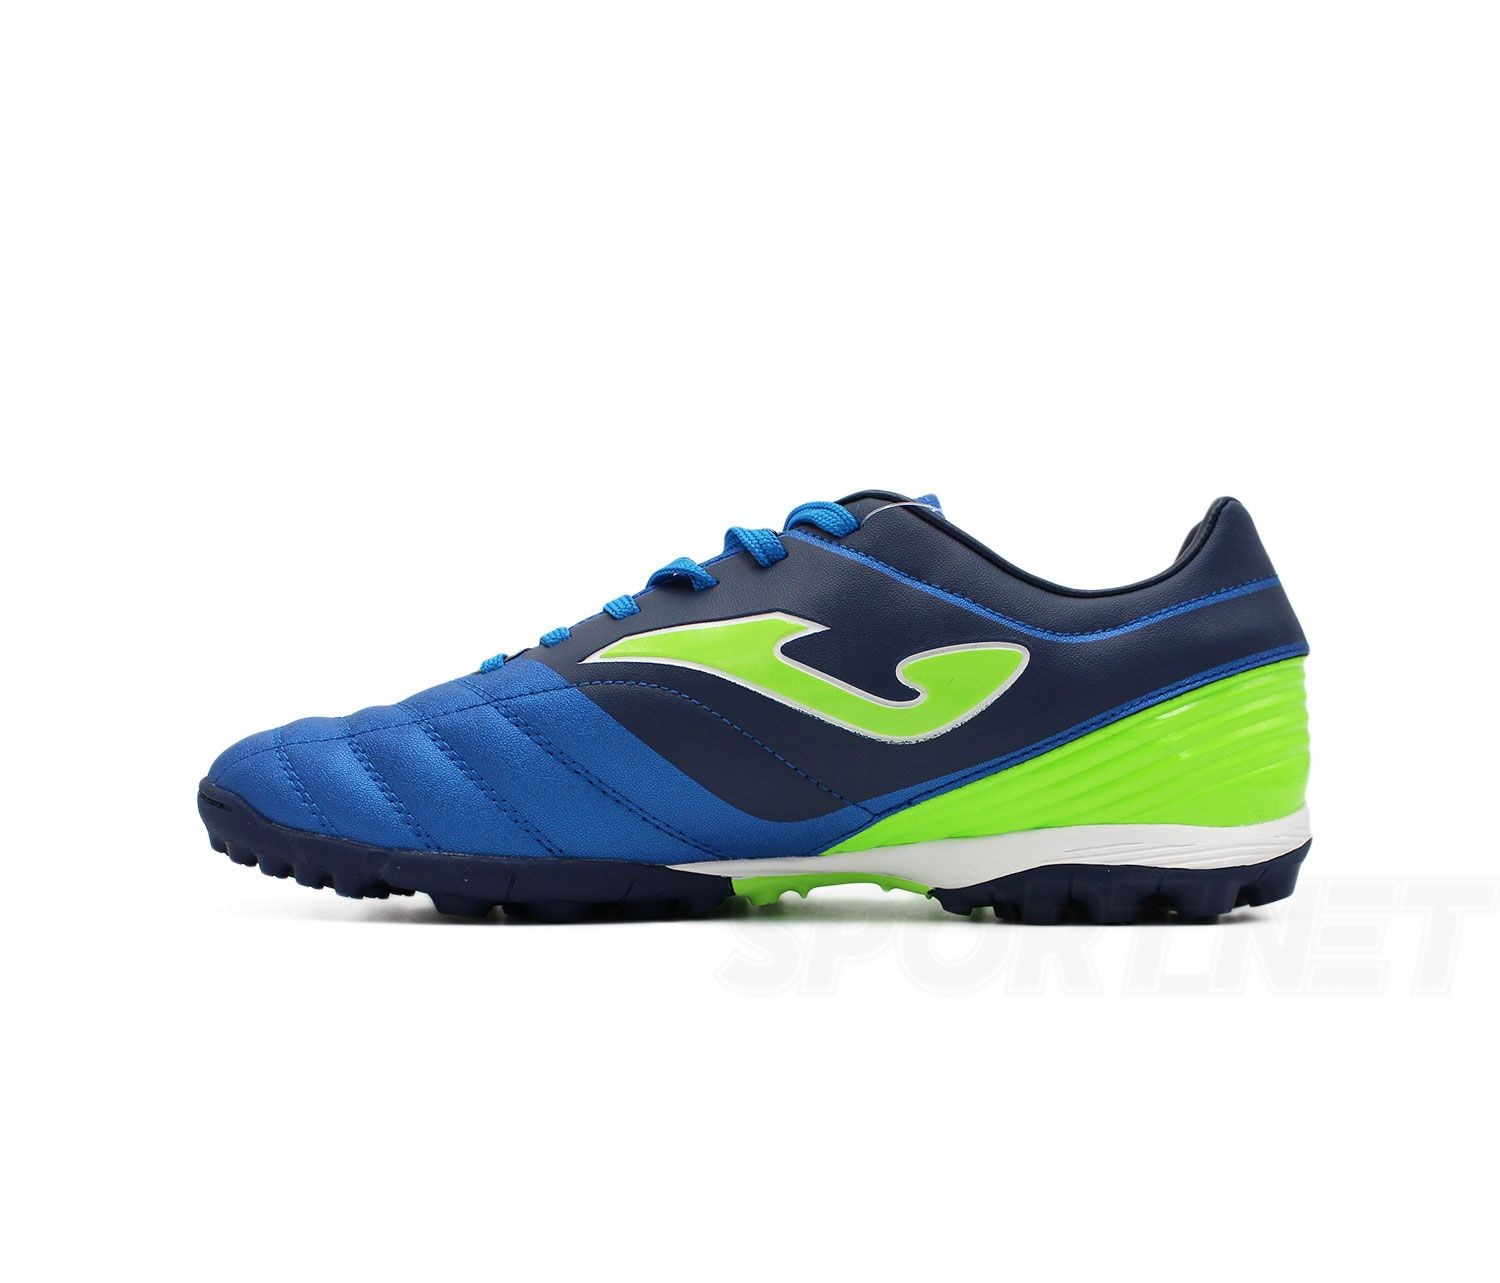 reputable site 5e480 7e326 SCARPA CALCETTO JOMA NUMERO-10 804 ROYAL TURF N-10S.804.TF